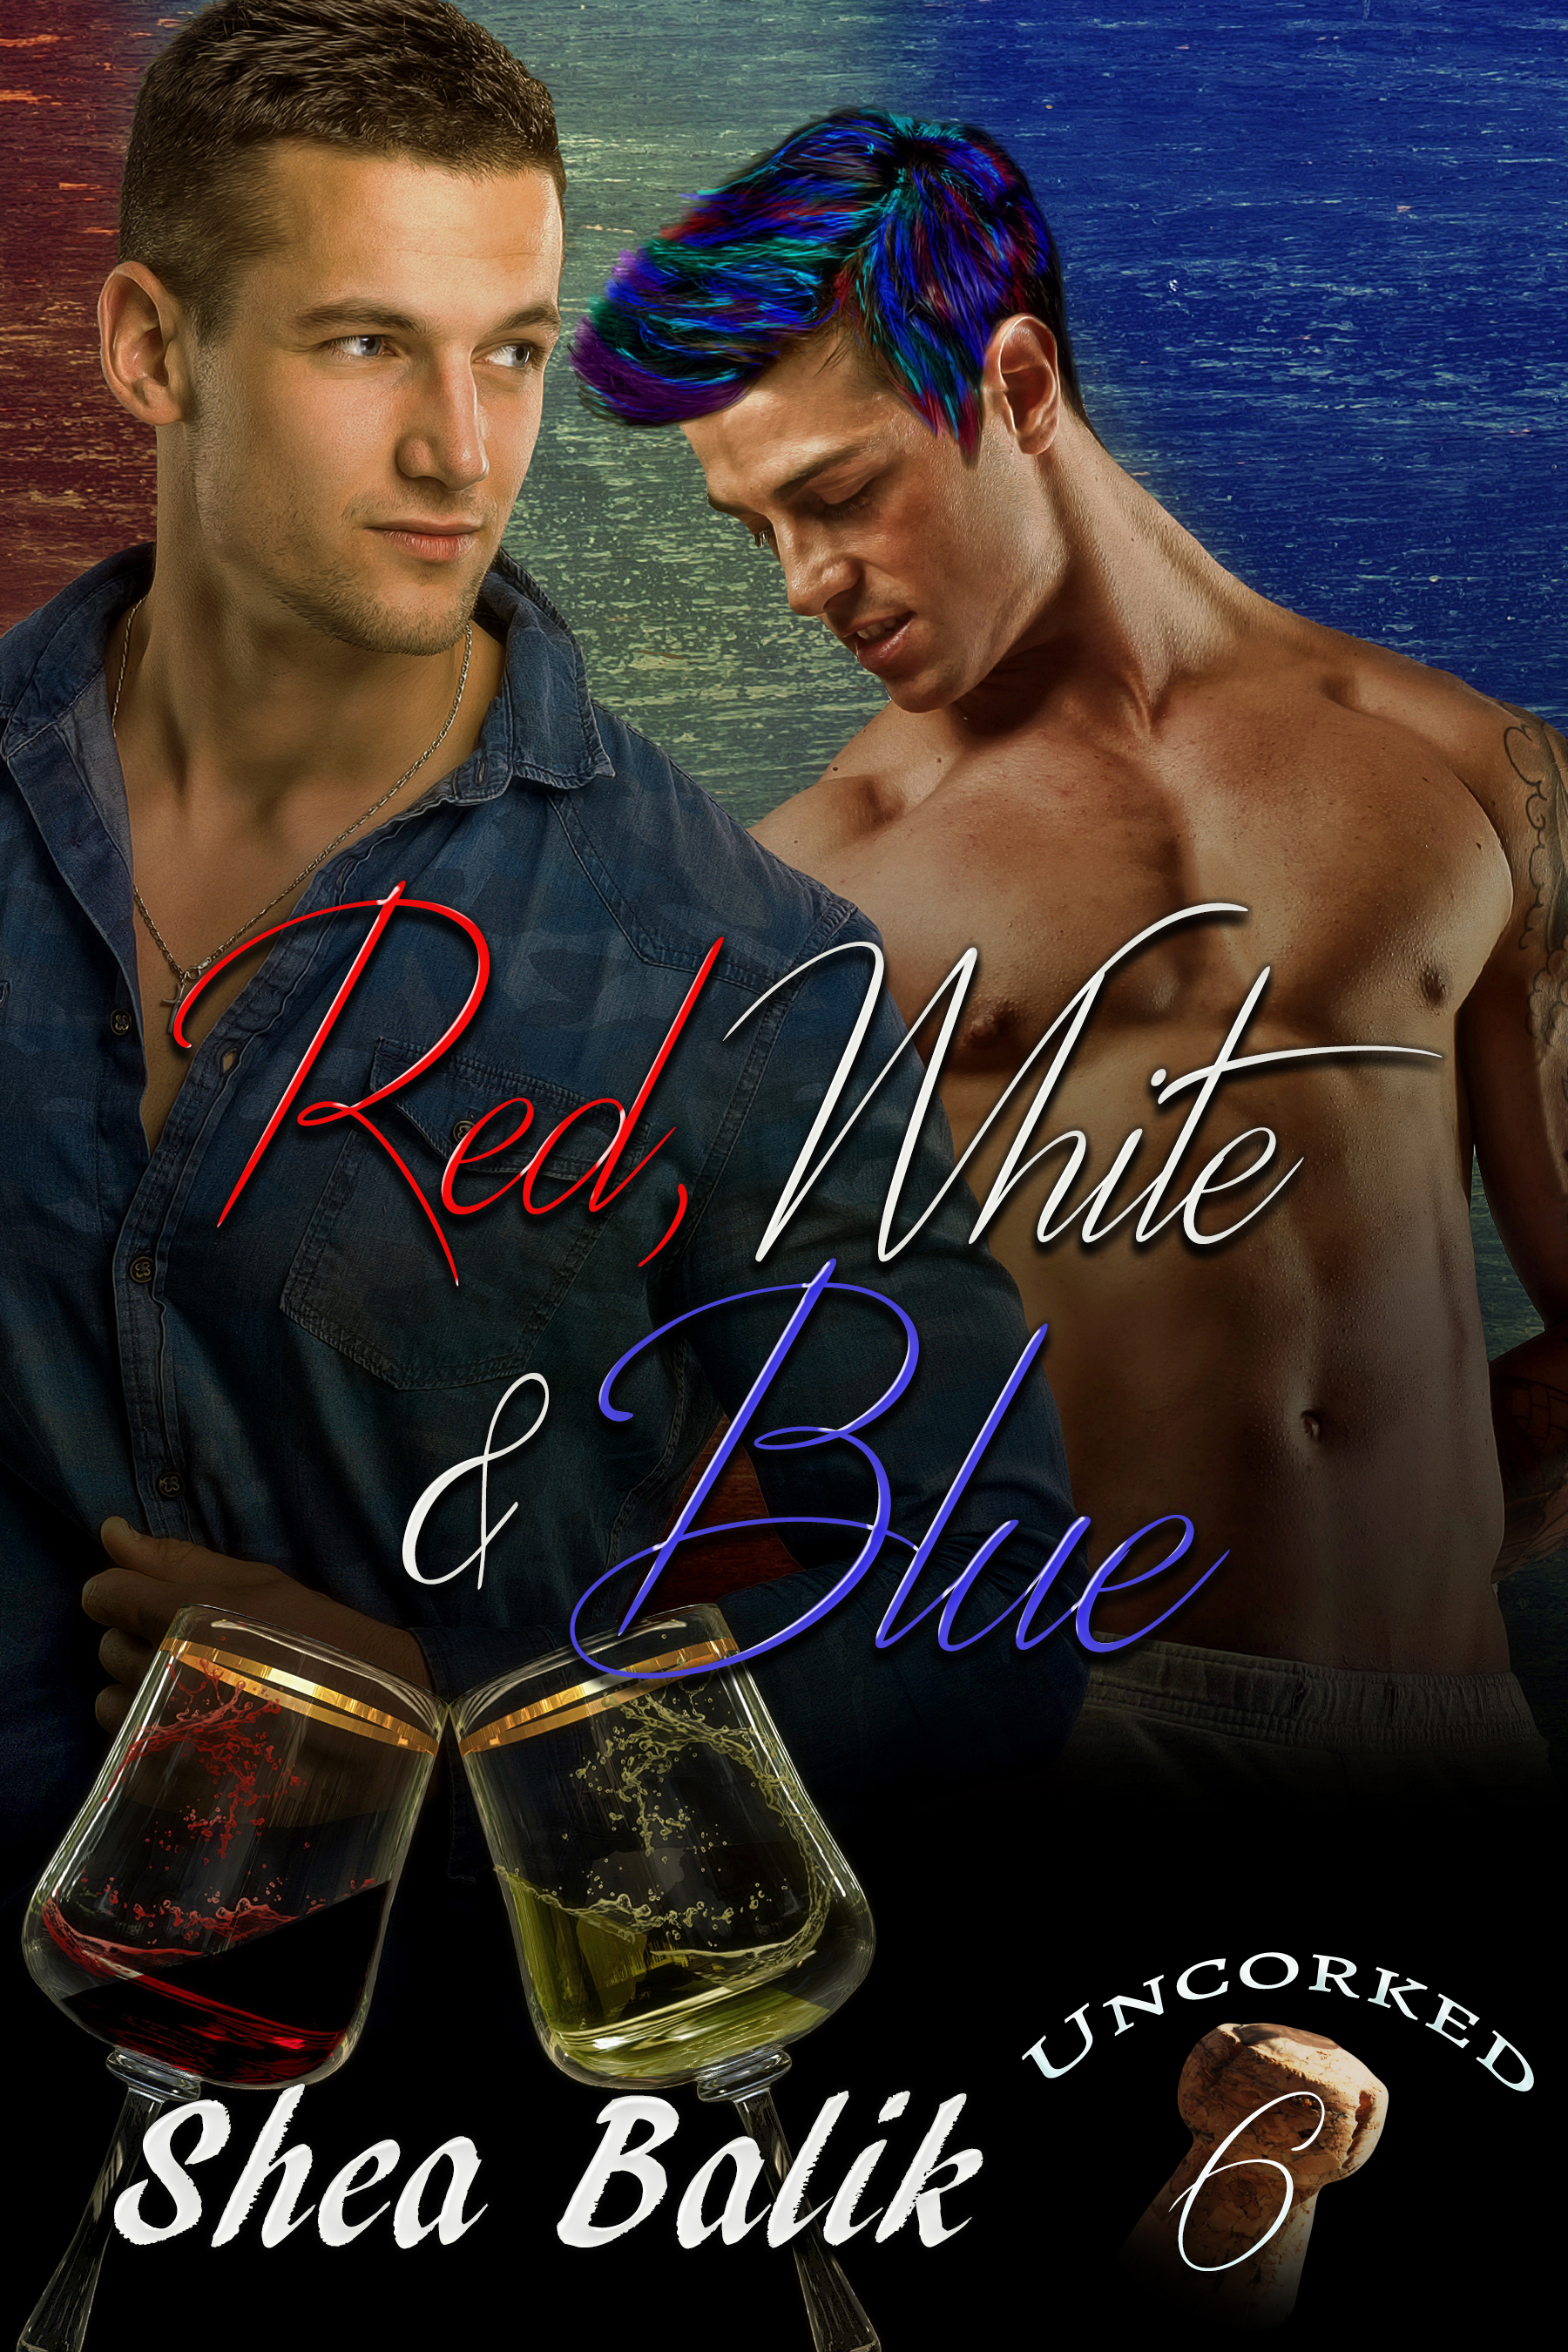 Red, White & Blue - Raise your wine glasses high to toast the men of Dahlonia while they discover the secret to happiness – LOVE.Blue Moon tried to live a fairly 'normal' life. To him that meant working, paying bills and keeping as far under the radar as possible. He'd had enough of being the center of attention to last a lifetime. Although, to be fair, it usually wasn't him that found a way to draw a crowd. That would be his mother, Apple Blossom. Blue was just the unfortunate person she used to gain the spotlight as often possible.Lowen Delany loved his new job at The Twisted Vine as a Wine Tasting Assistant. His bosses didn't even mind his multicolored hair and tattoos. It didn't hurt that he got to try the vineyard's new wines every year either. Best of all, he was able to meet new and interesting people every day, including a man who tried to hide behind a fake tree while wearing a colorful outfit that couldn't have been missed in the dark from a mile away. Although, Lowen was fairly sure, even dressed in black, he would have noticed Blue.But when Blue's mother decides to butt into their budding relationship, thankfully, they both find that family is more than just about genetics. It's about who is there for them when things get tough that matter most.Warning: Many tastings of both red and white wine were consumed during the writing of this book. This author is far from being an expert, but it isn't from lack of trying.                    PURCHASE LINKS